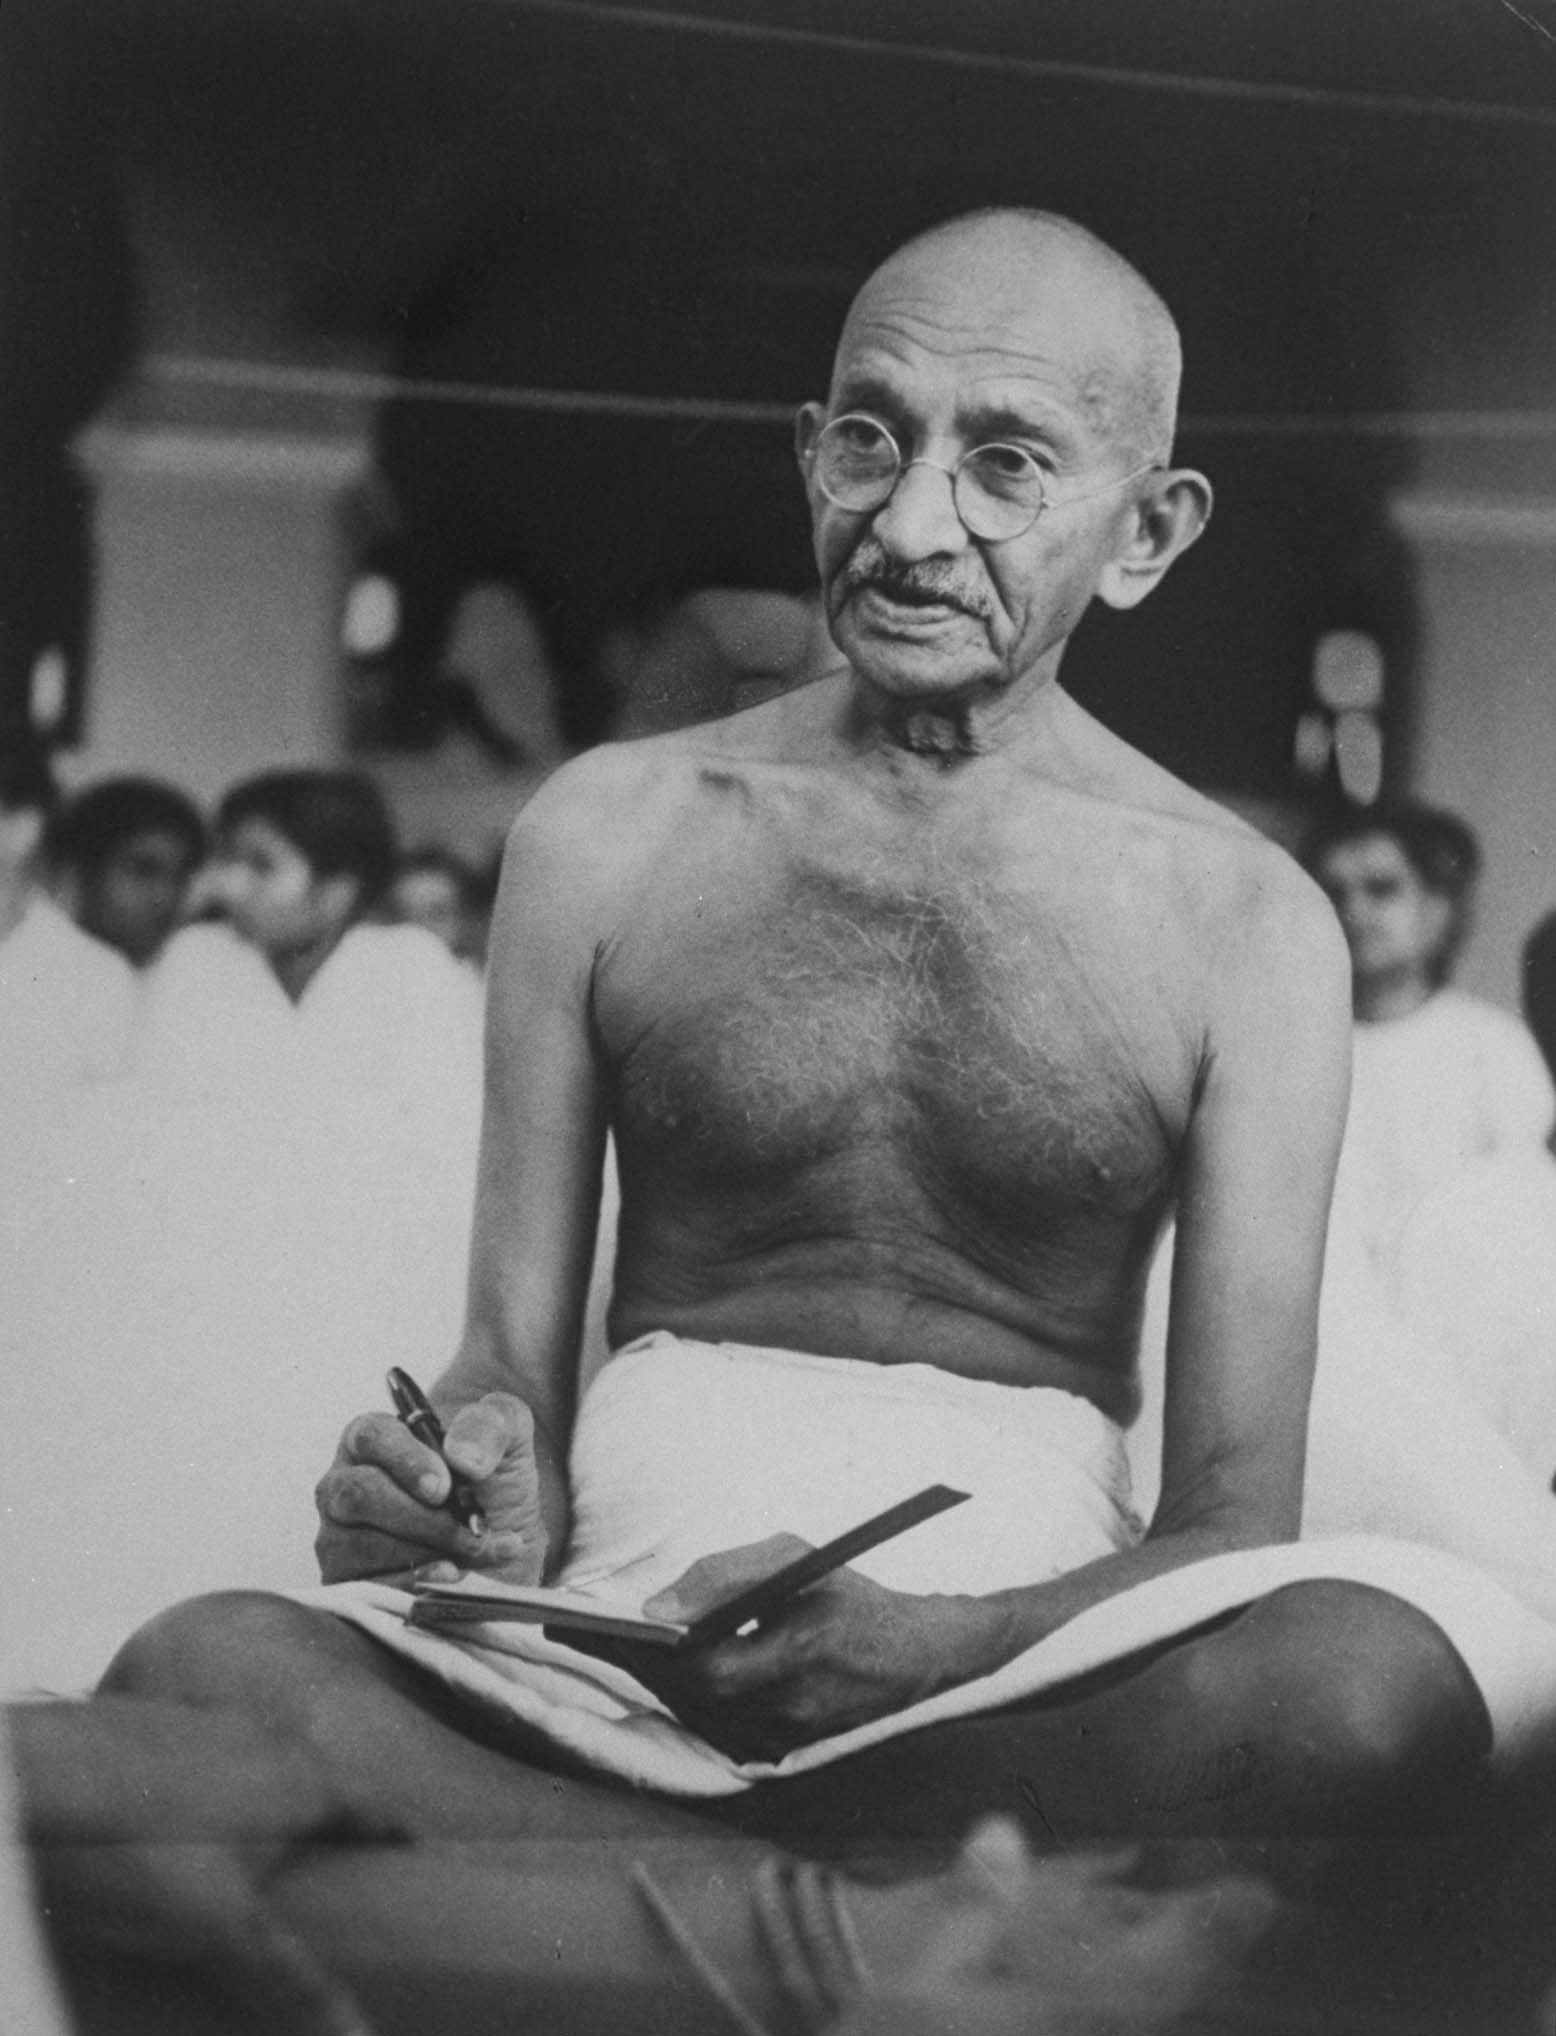 Mohandas K. Gandhi was a key leader of India's independence movement.